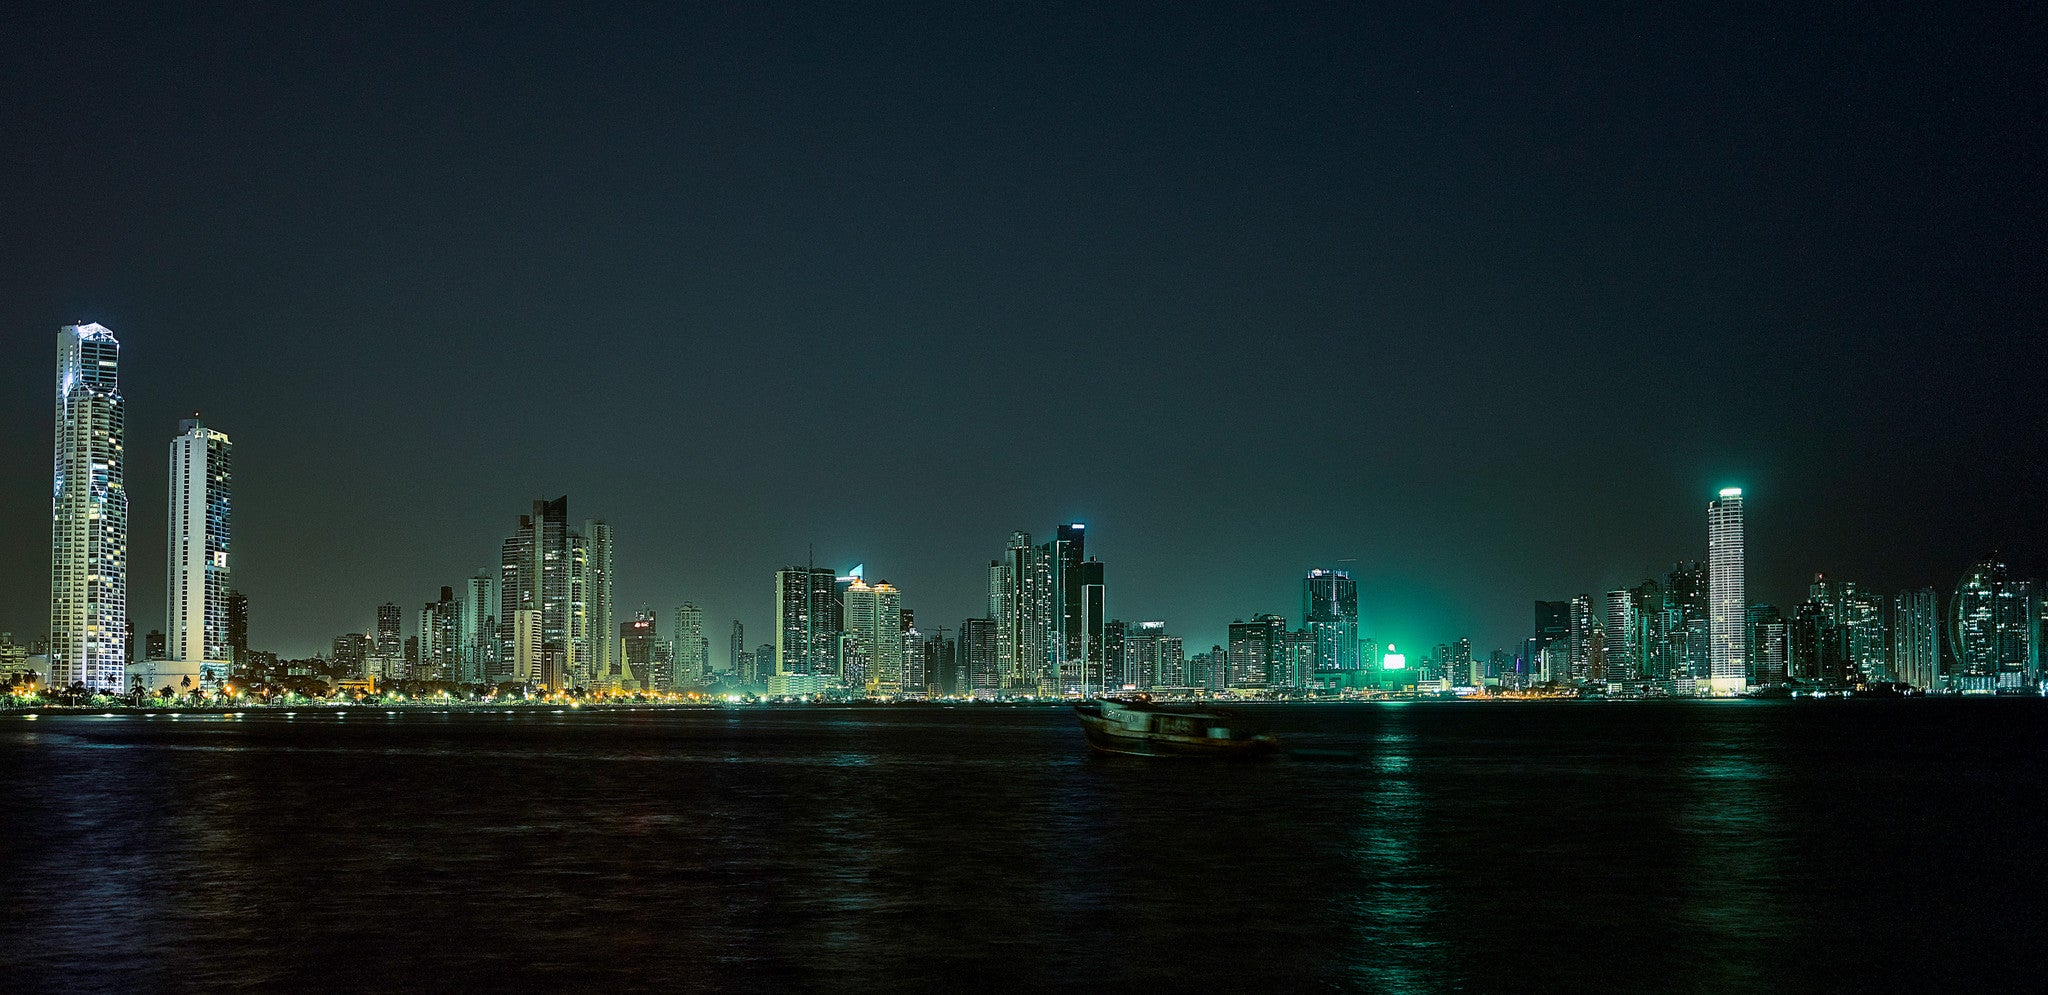 City Skyline at Night - Panama